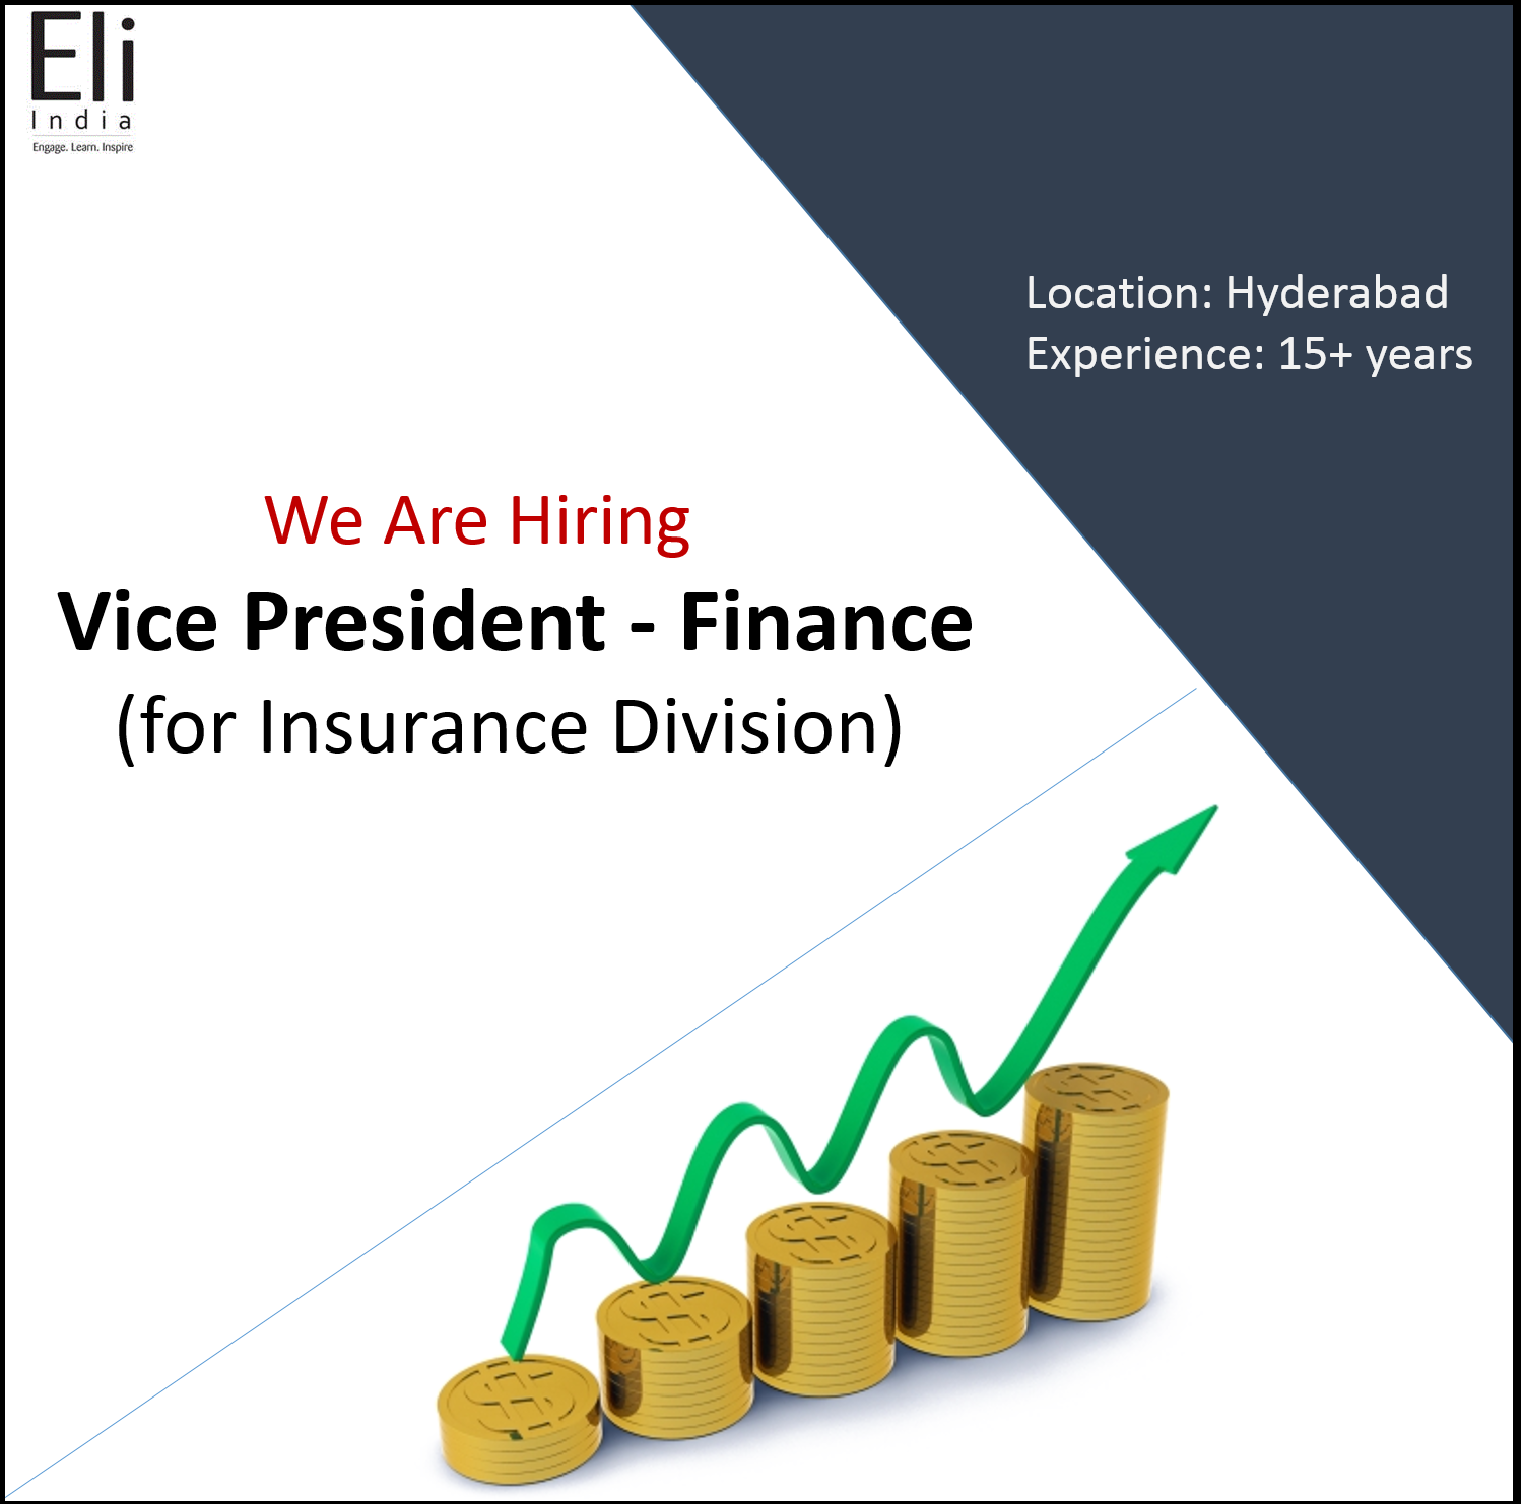 Eli India is looking for Vice President Finance (for